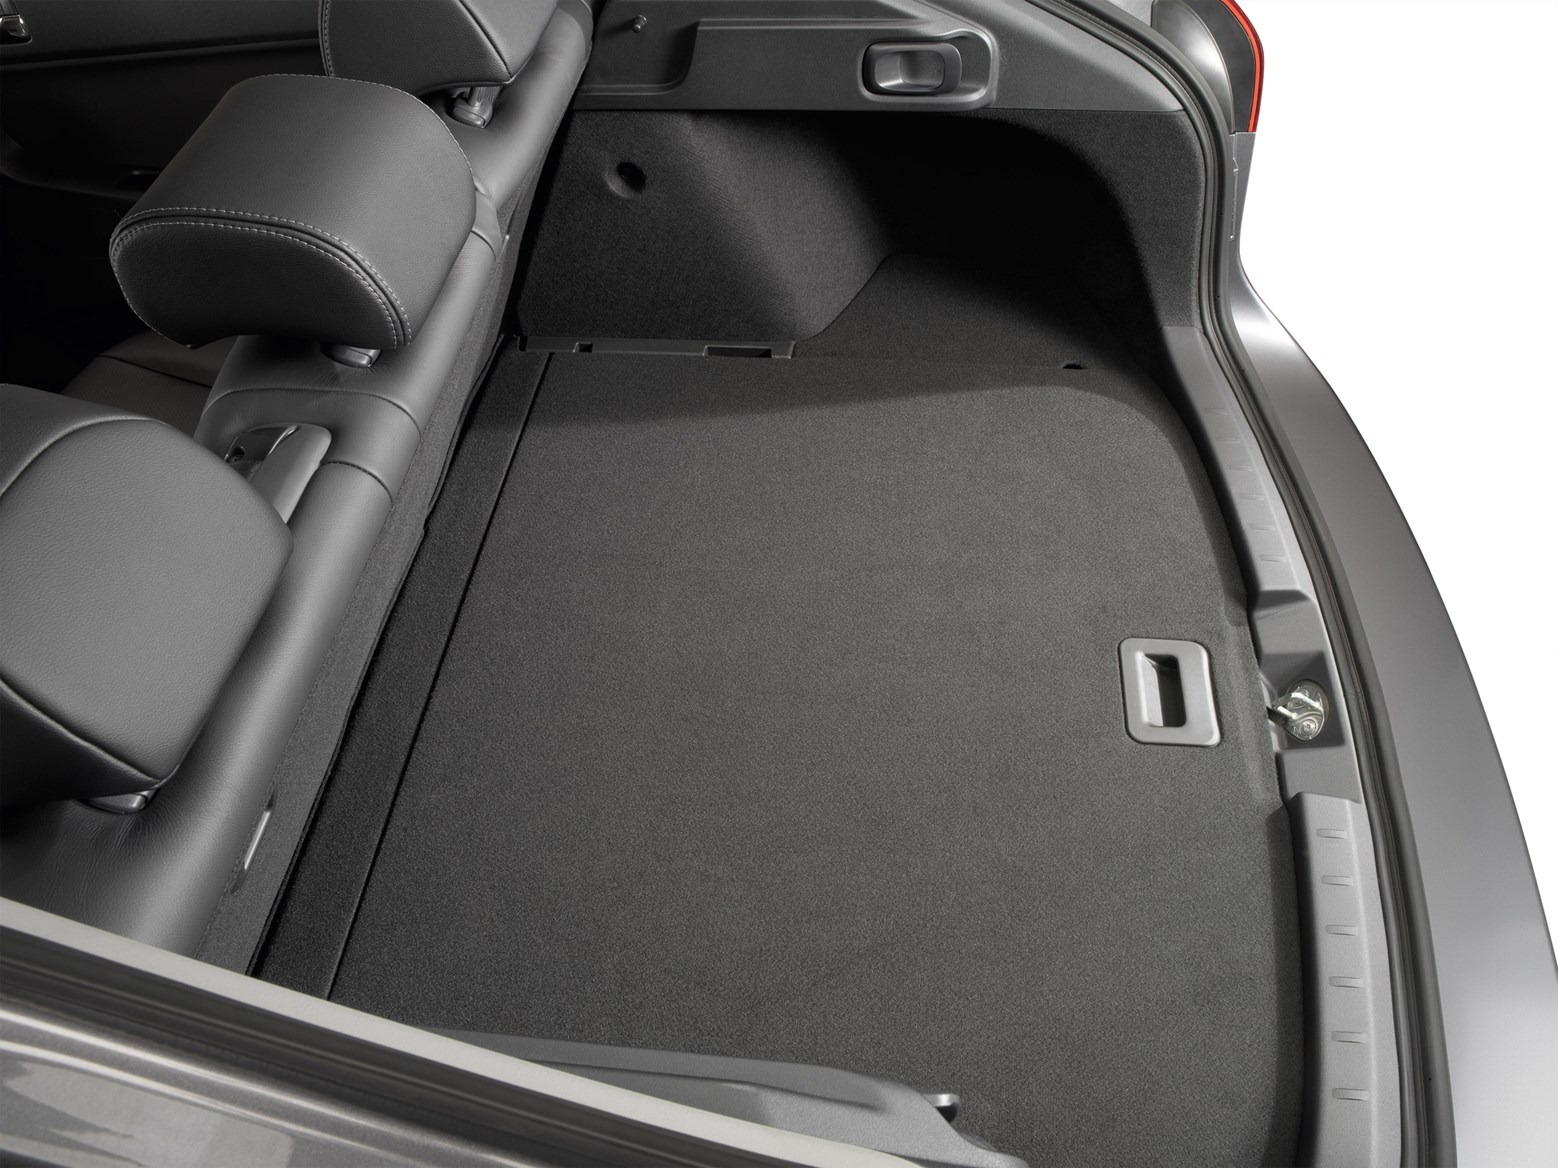 Used Mitsubishi Lancer Sportback (2008 - 2011) Review | Parkers